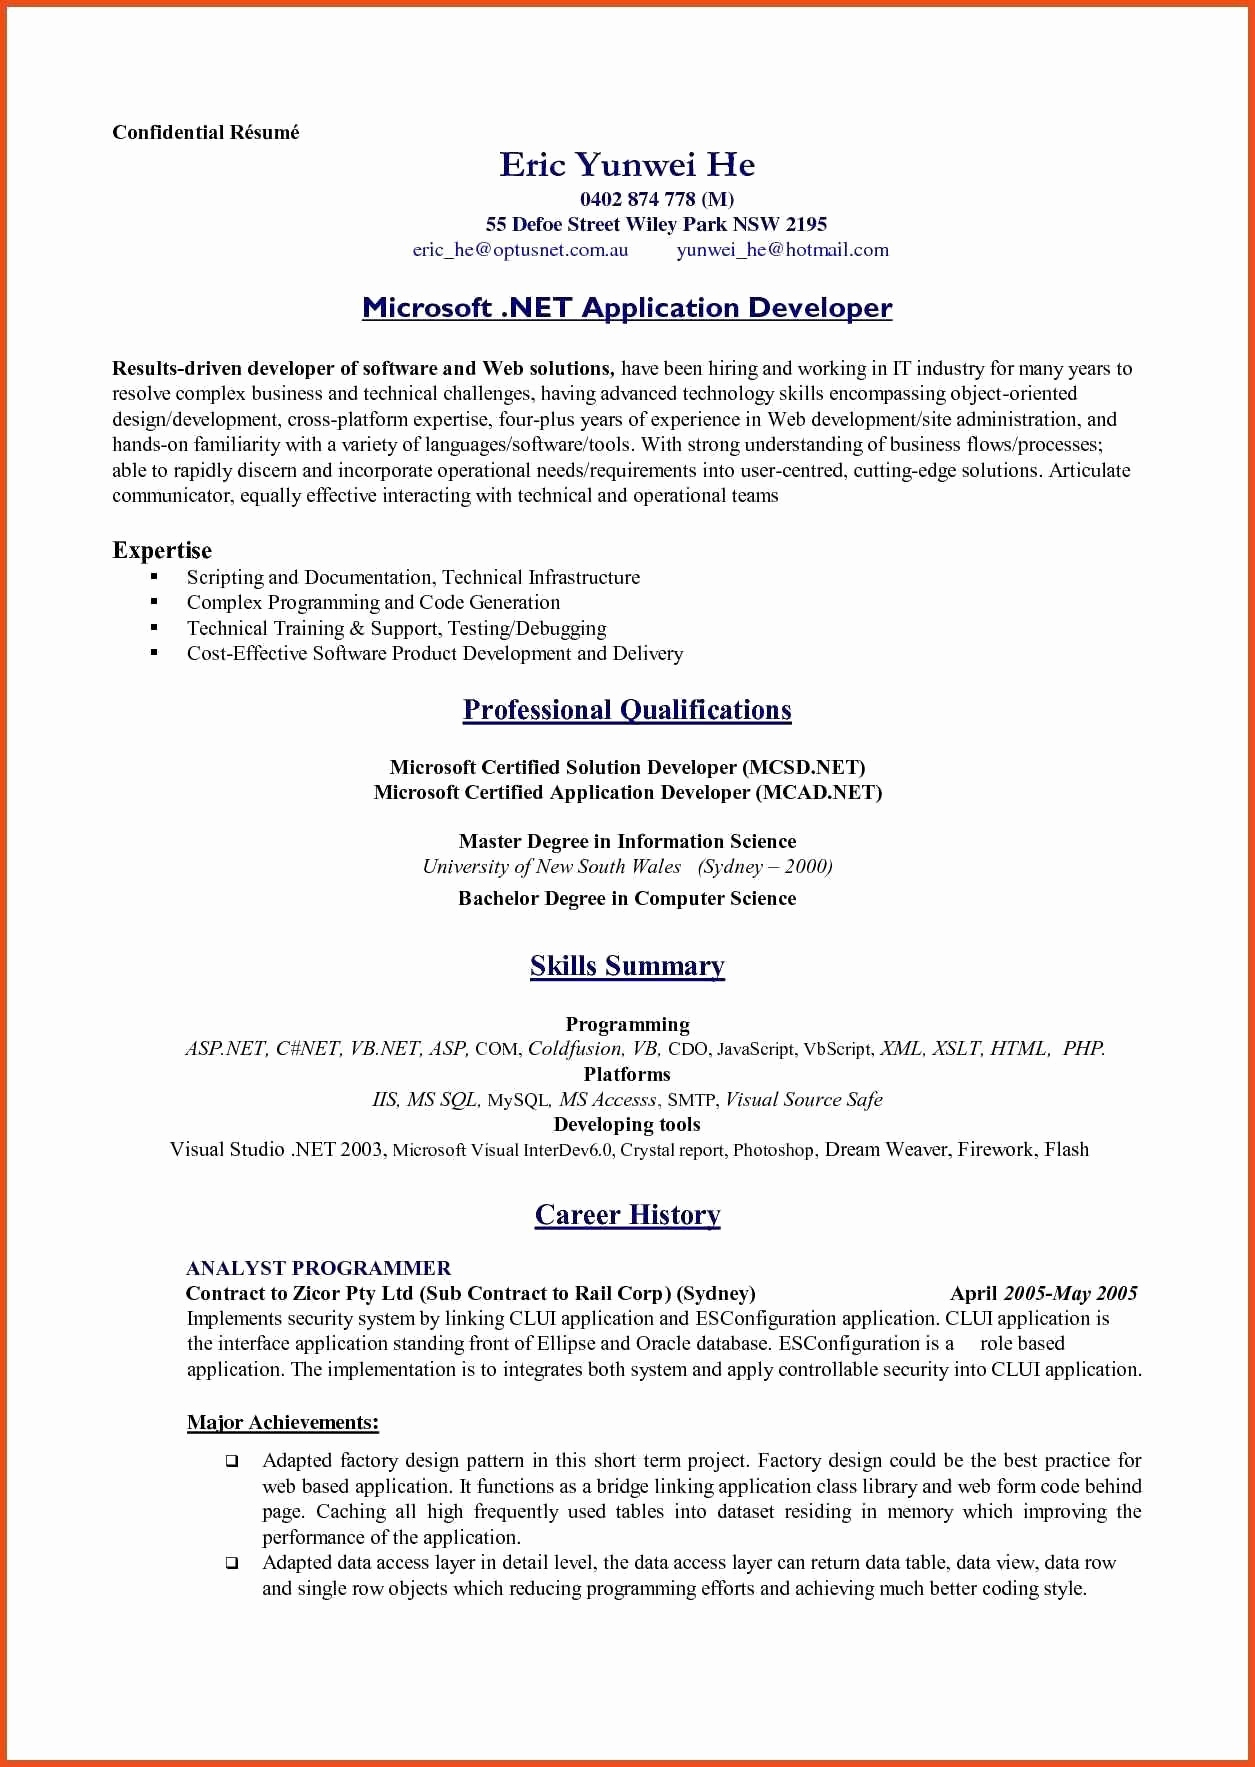 Freelance software Developer Resume - Freelance software Development Contract Template New 11 Flawless